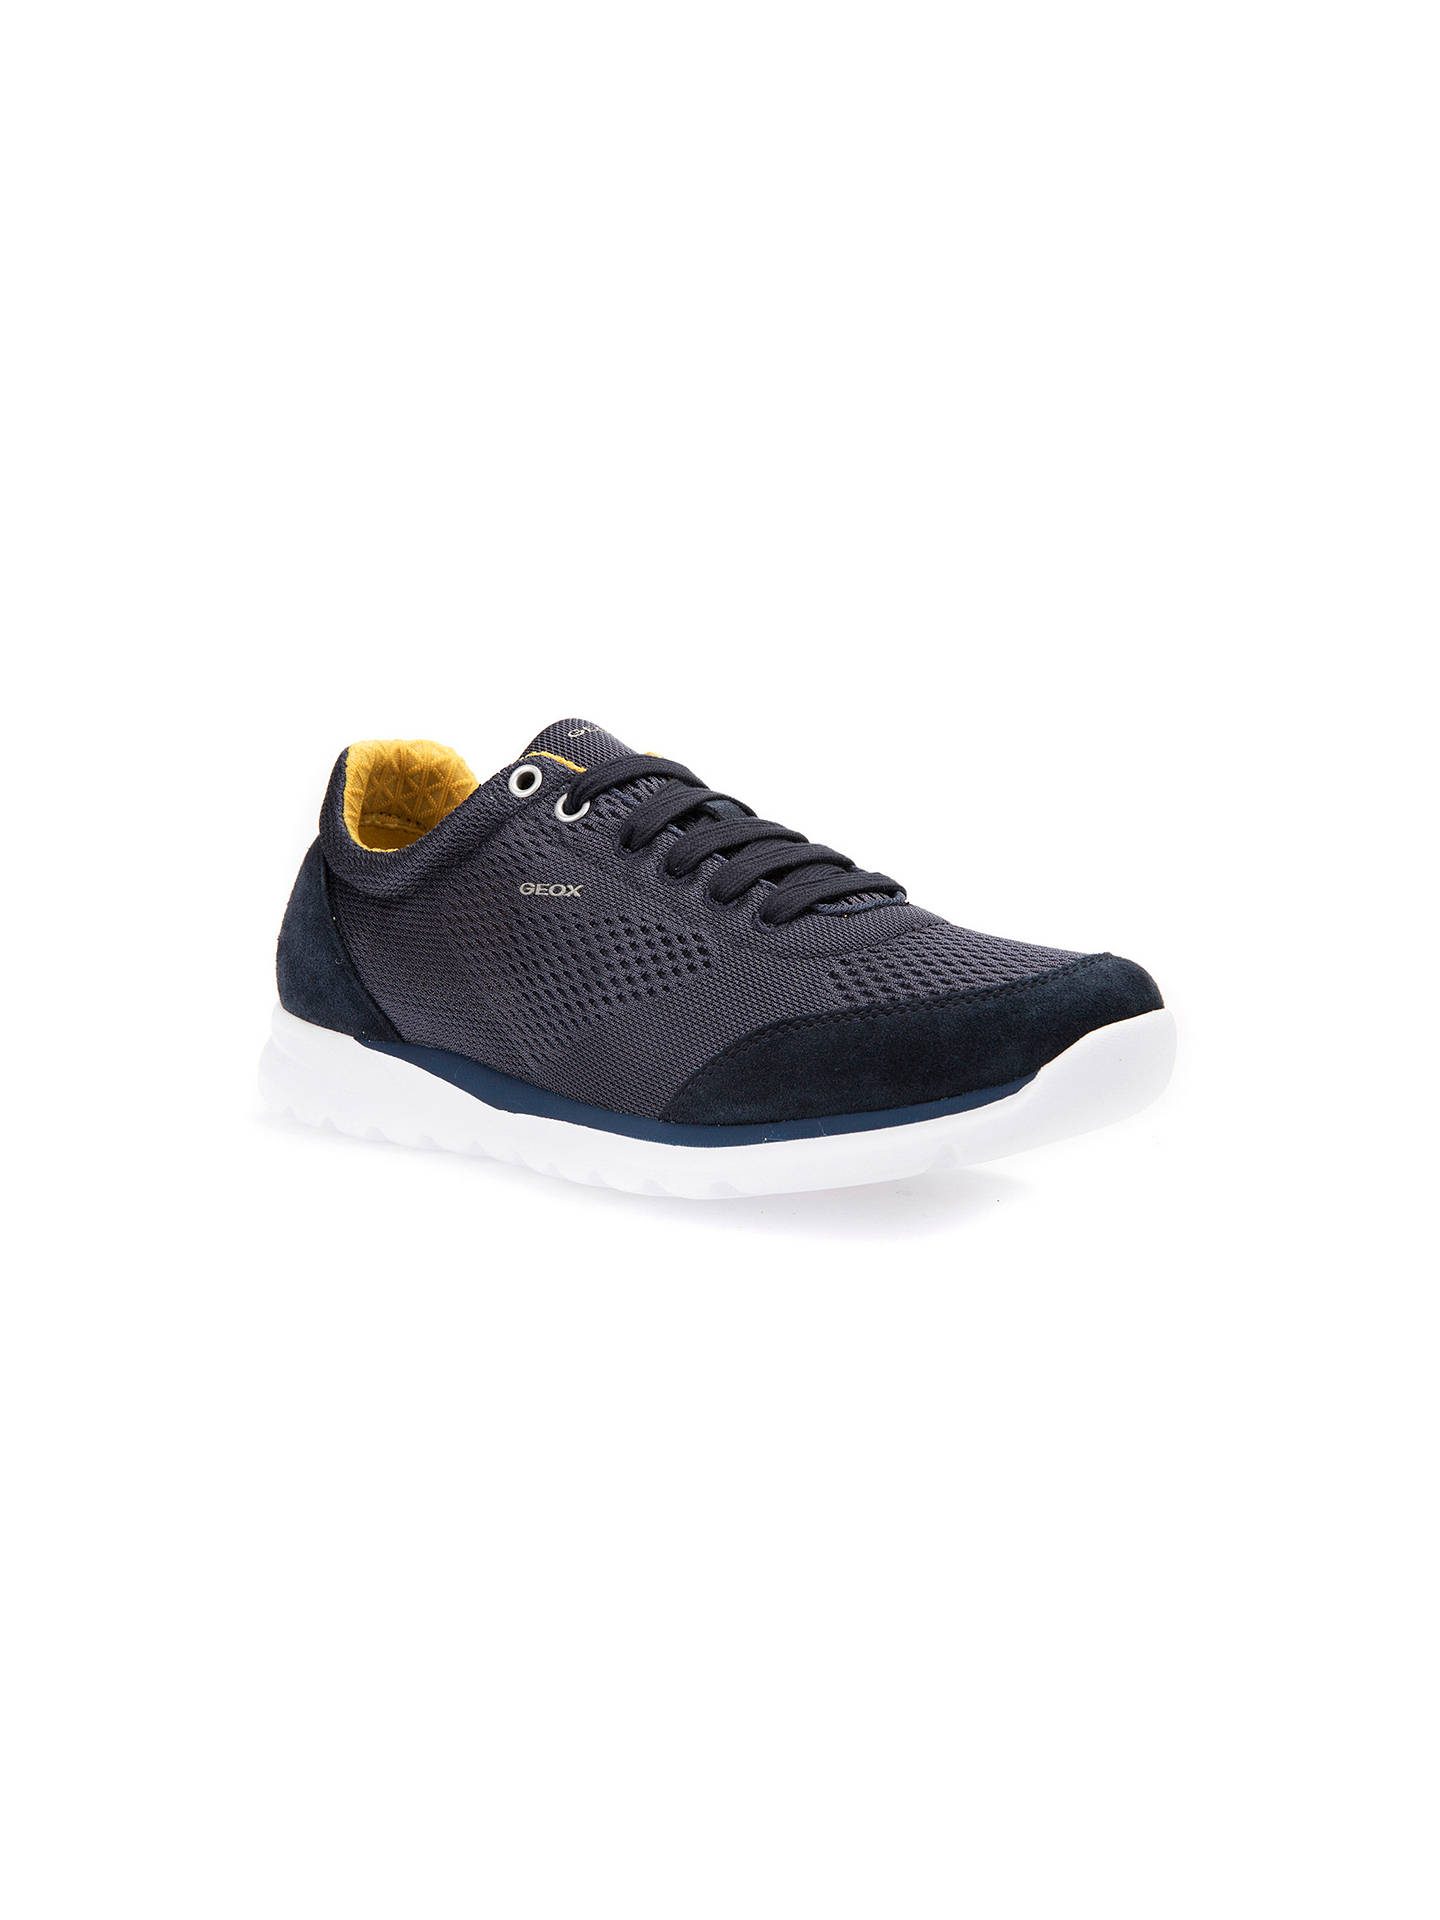 Geox Damian Trainers | Navy at John Lewis & Partners